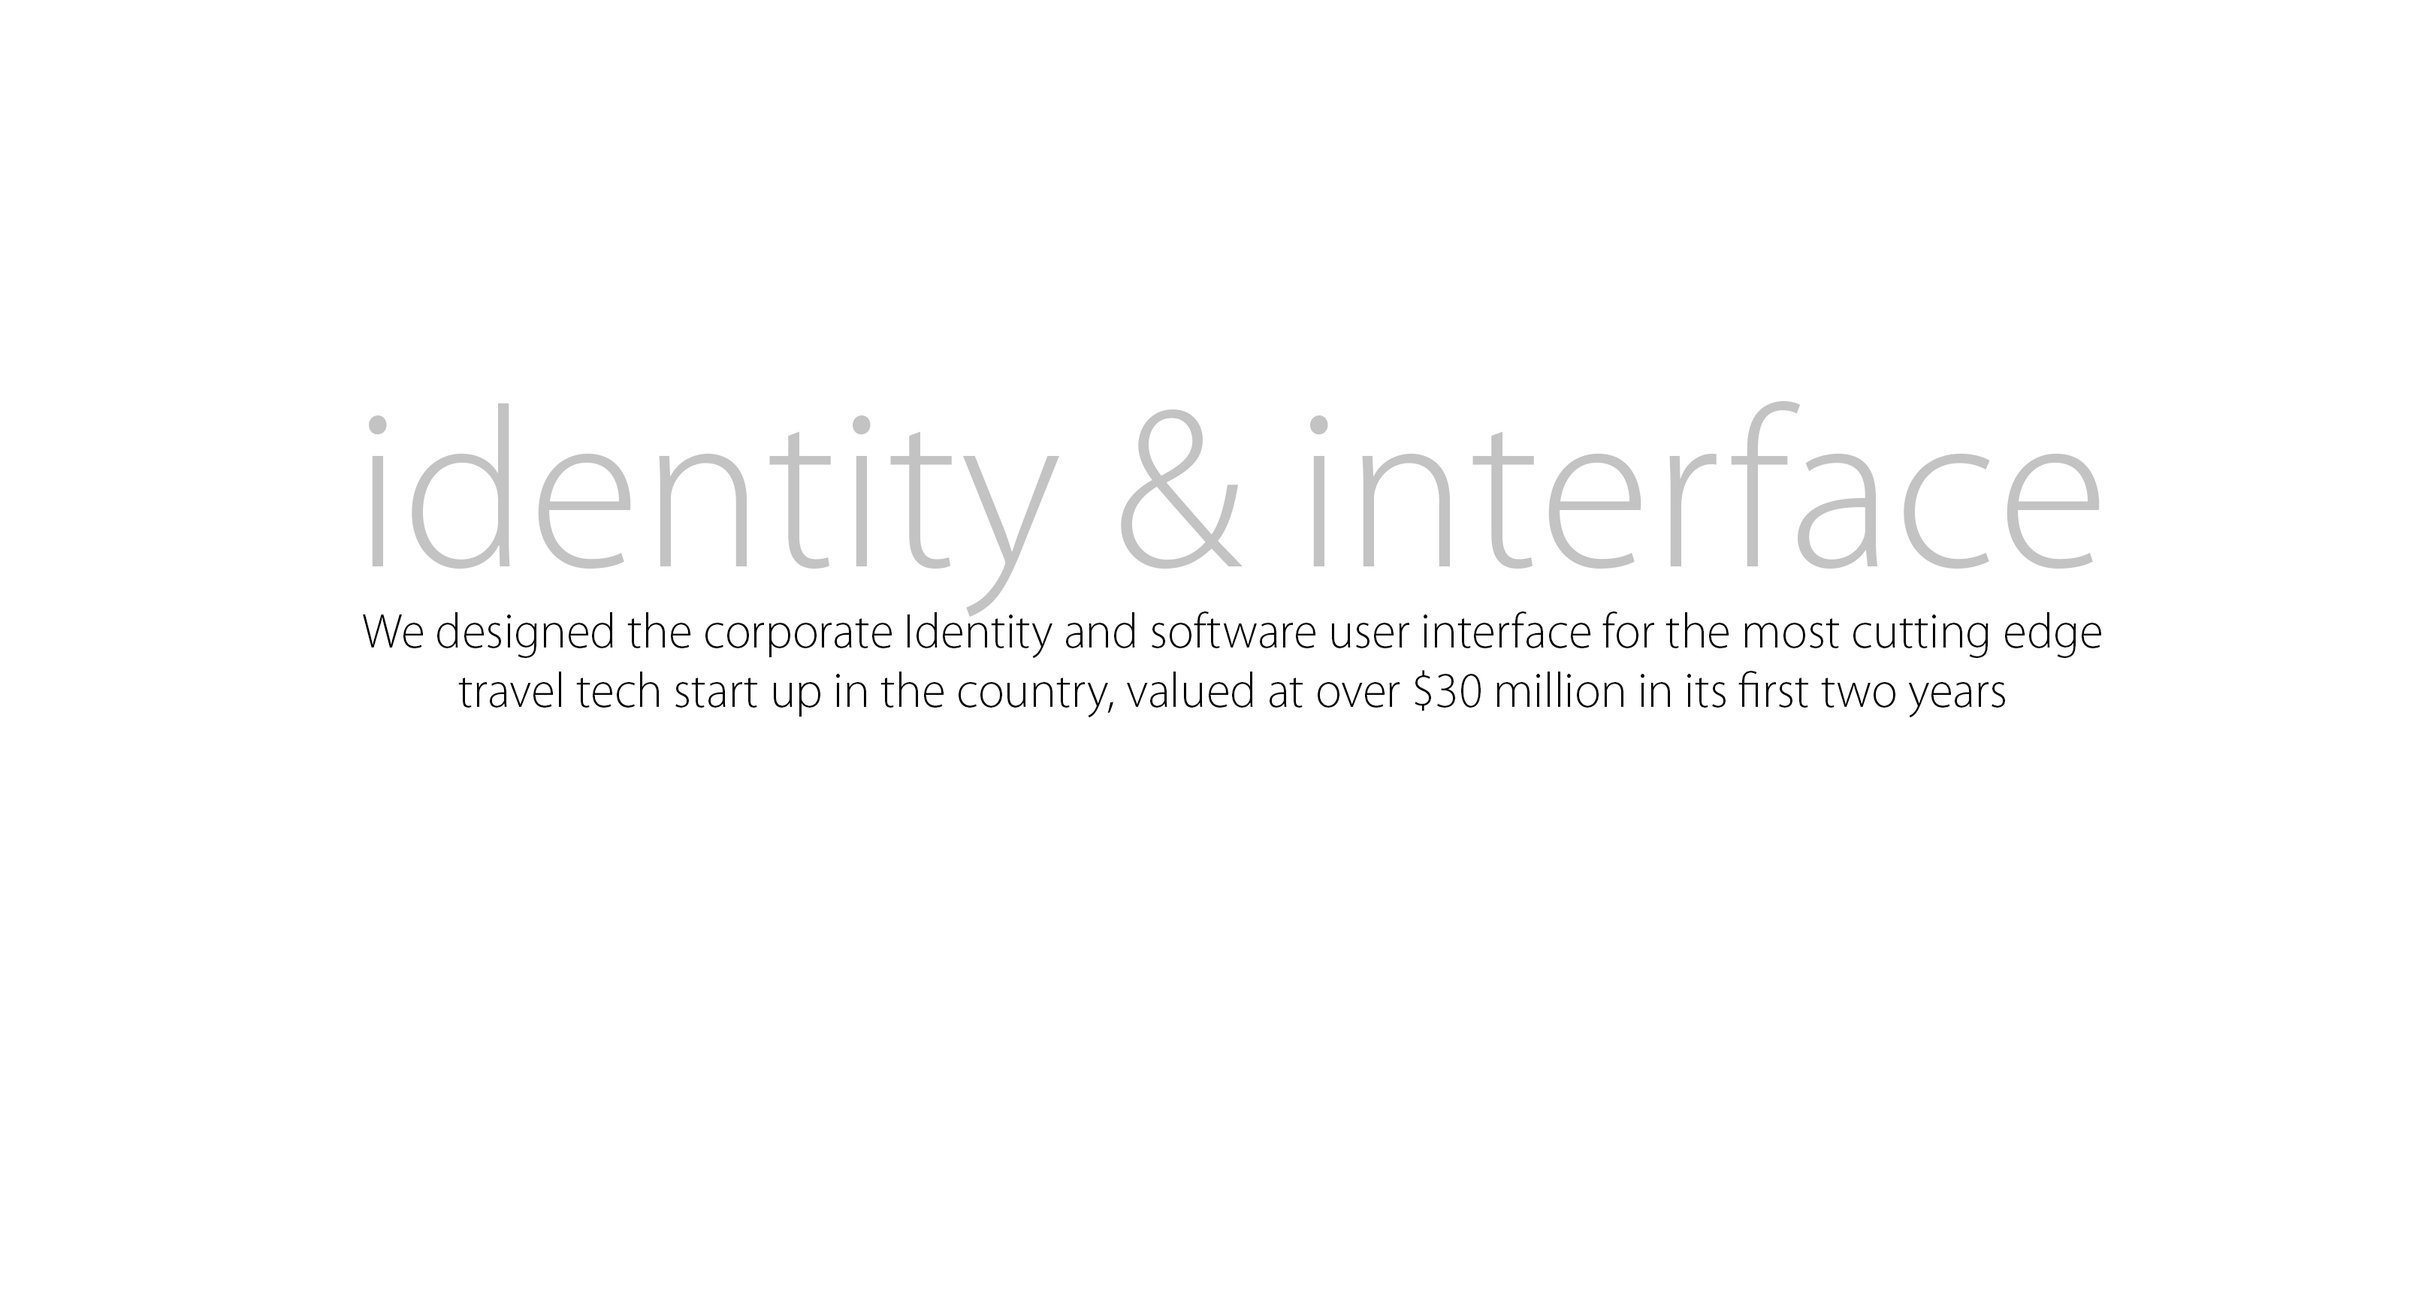 identity and interface.jpg